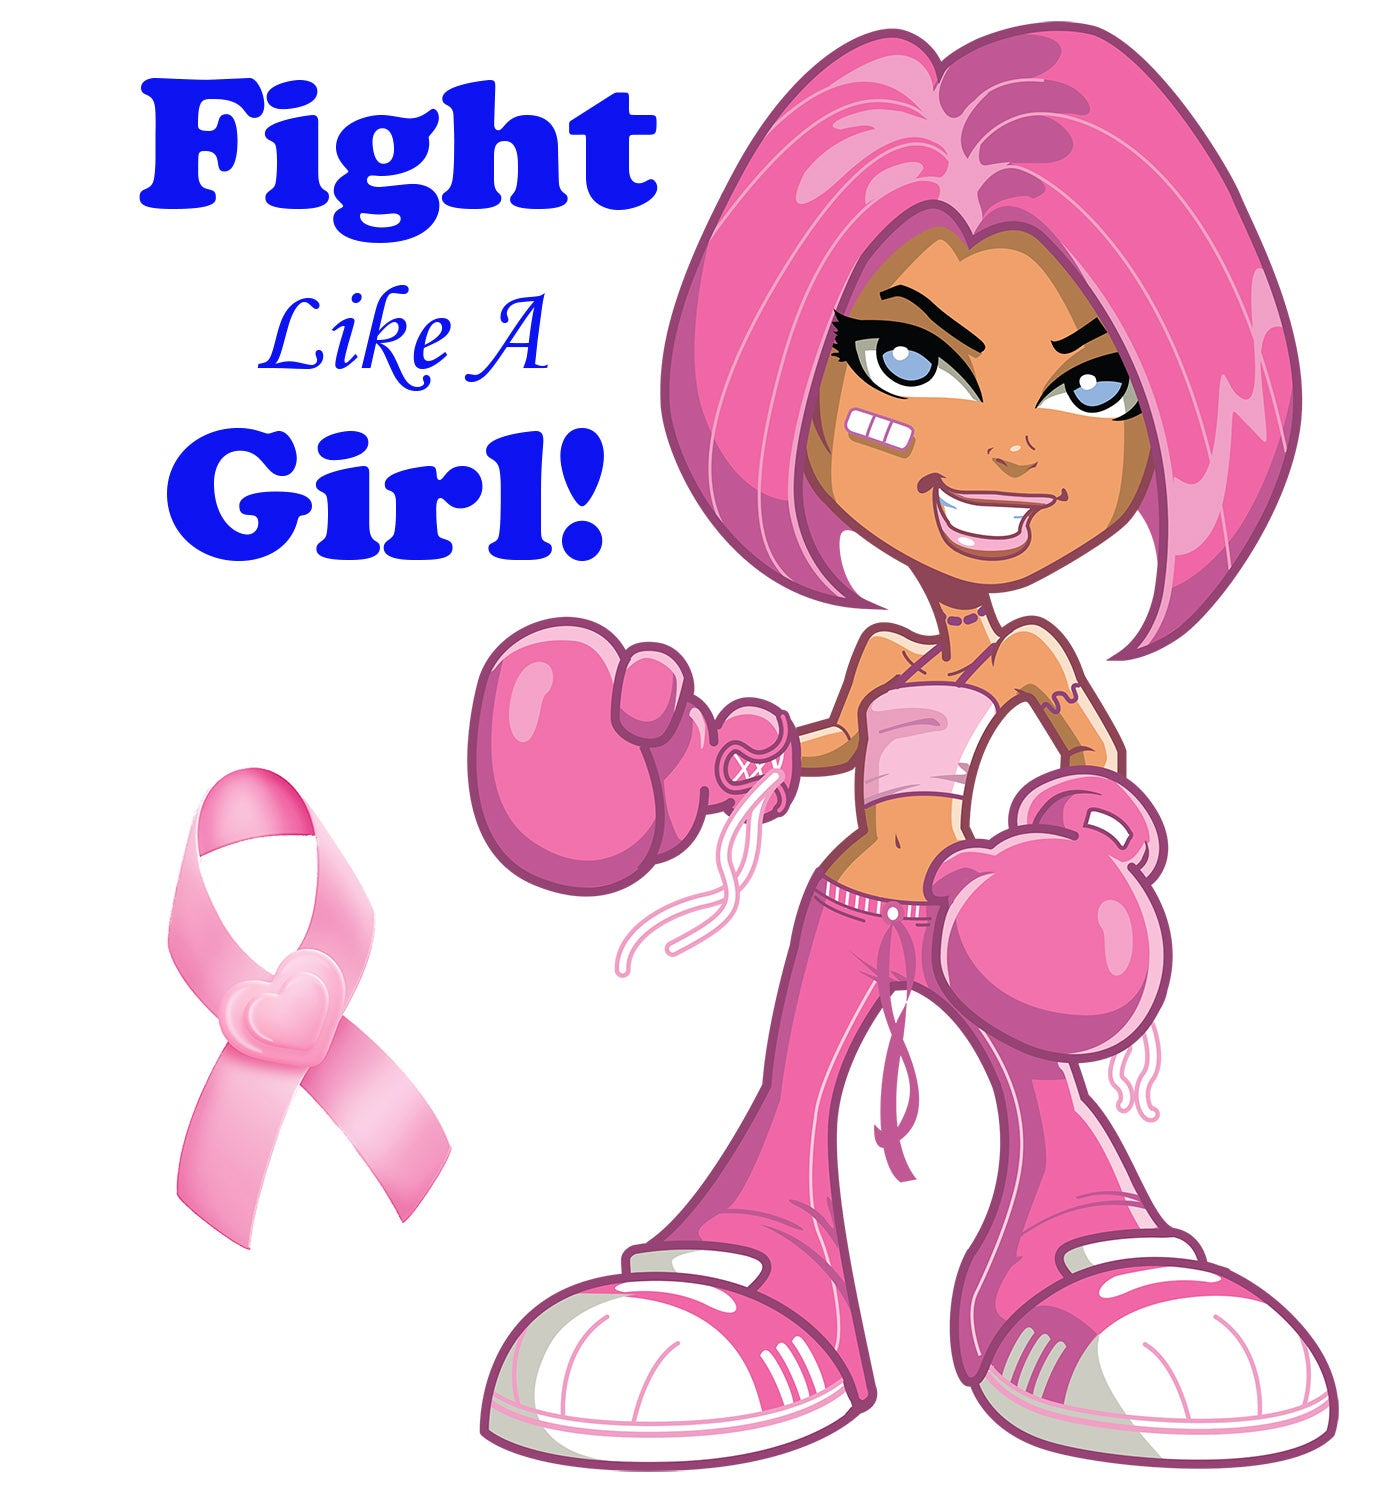 Cancer Fabric Breast Cancer Custom Print Panel Fight Like A Girl On White 5629